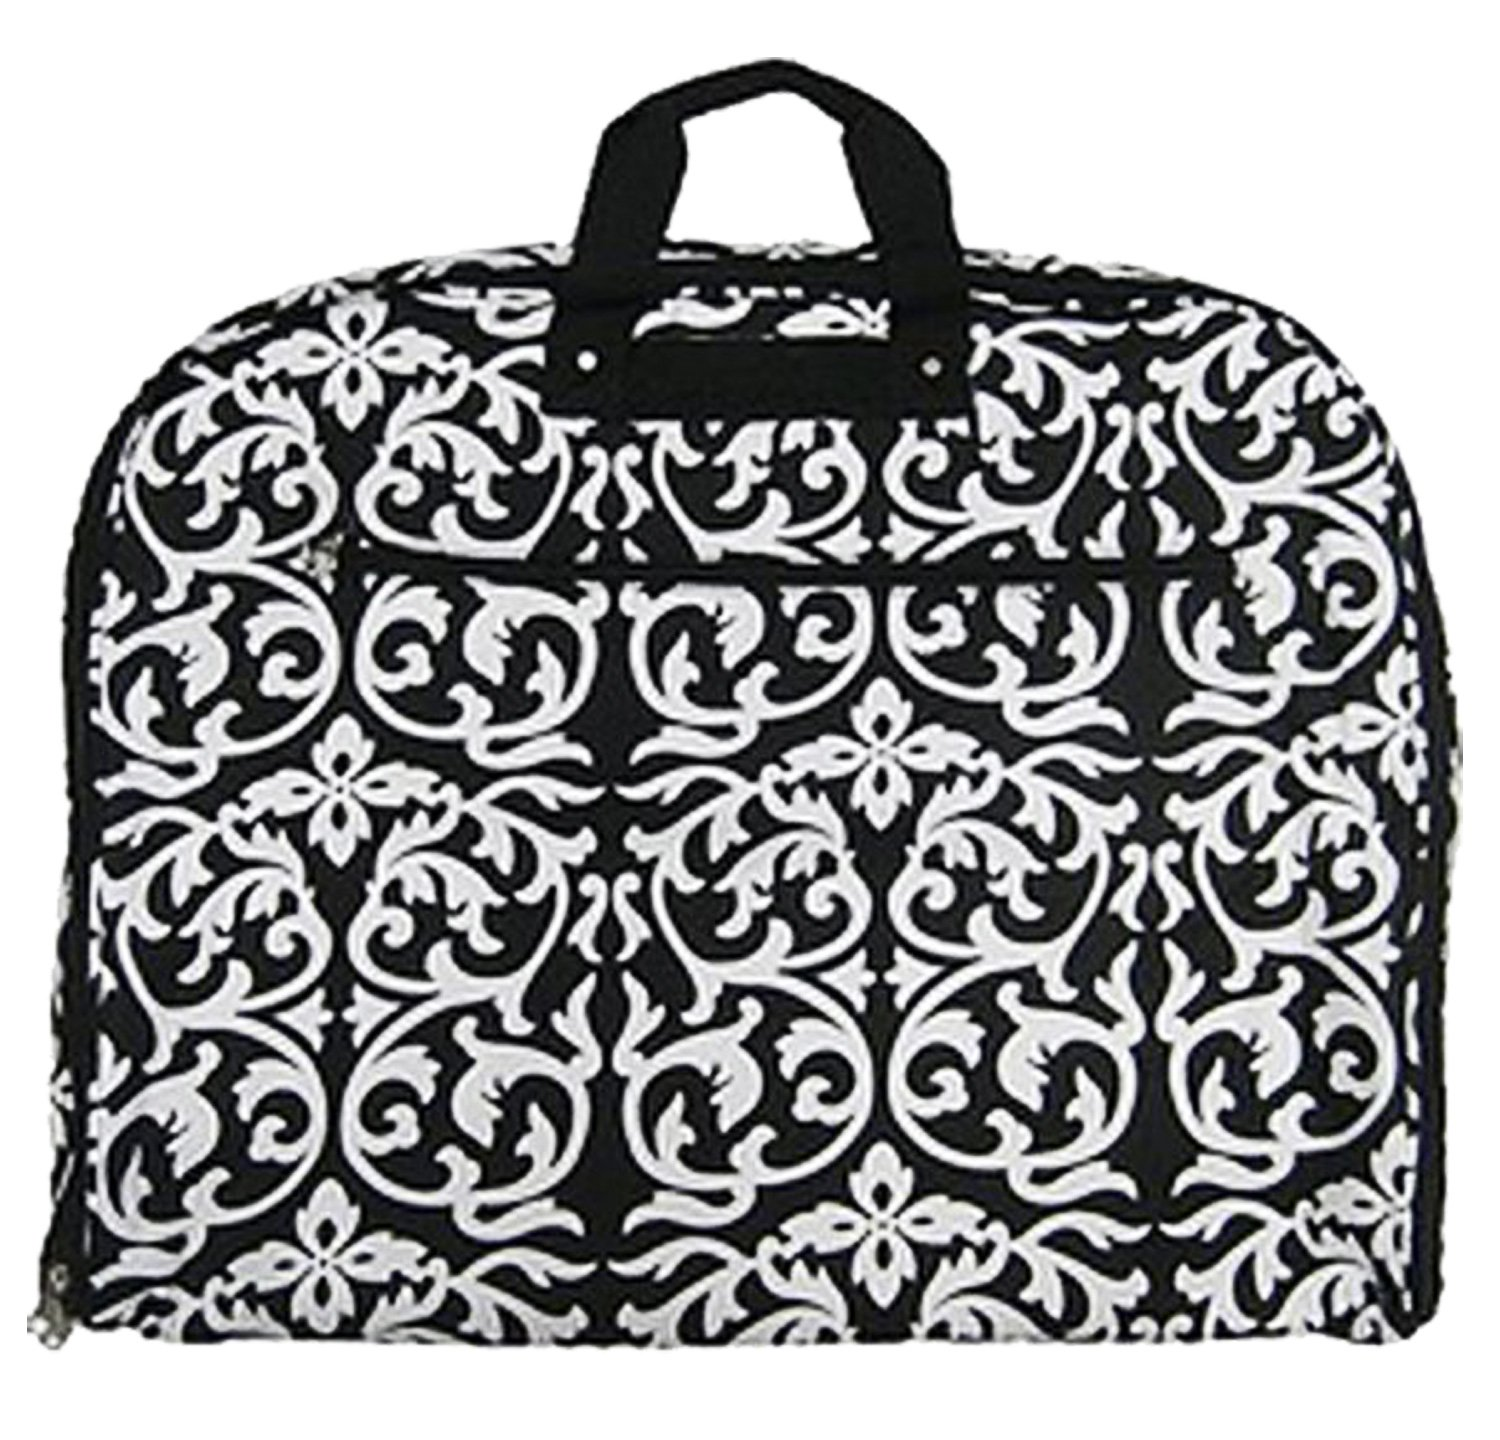 Fashionable Travel Garment Bags with Extended Hanger - Custom Embroidery Available (Black Damask)